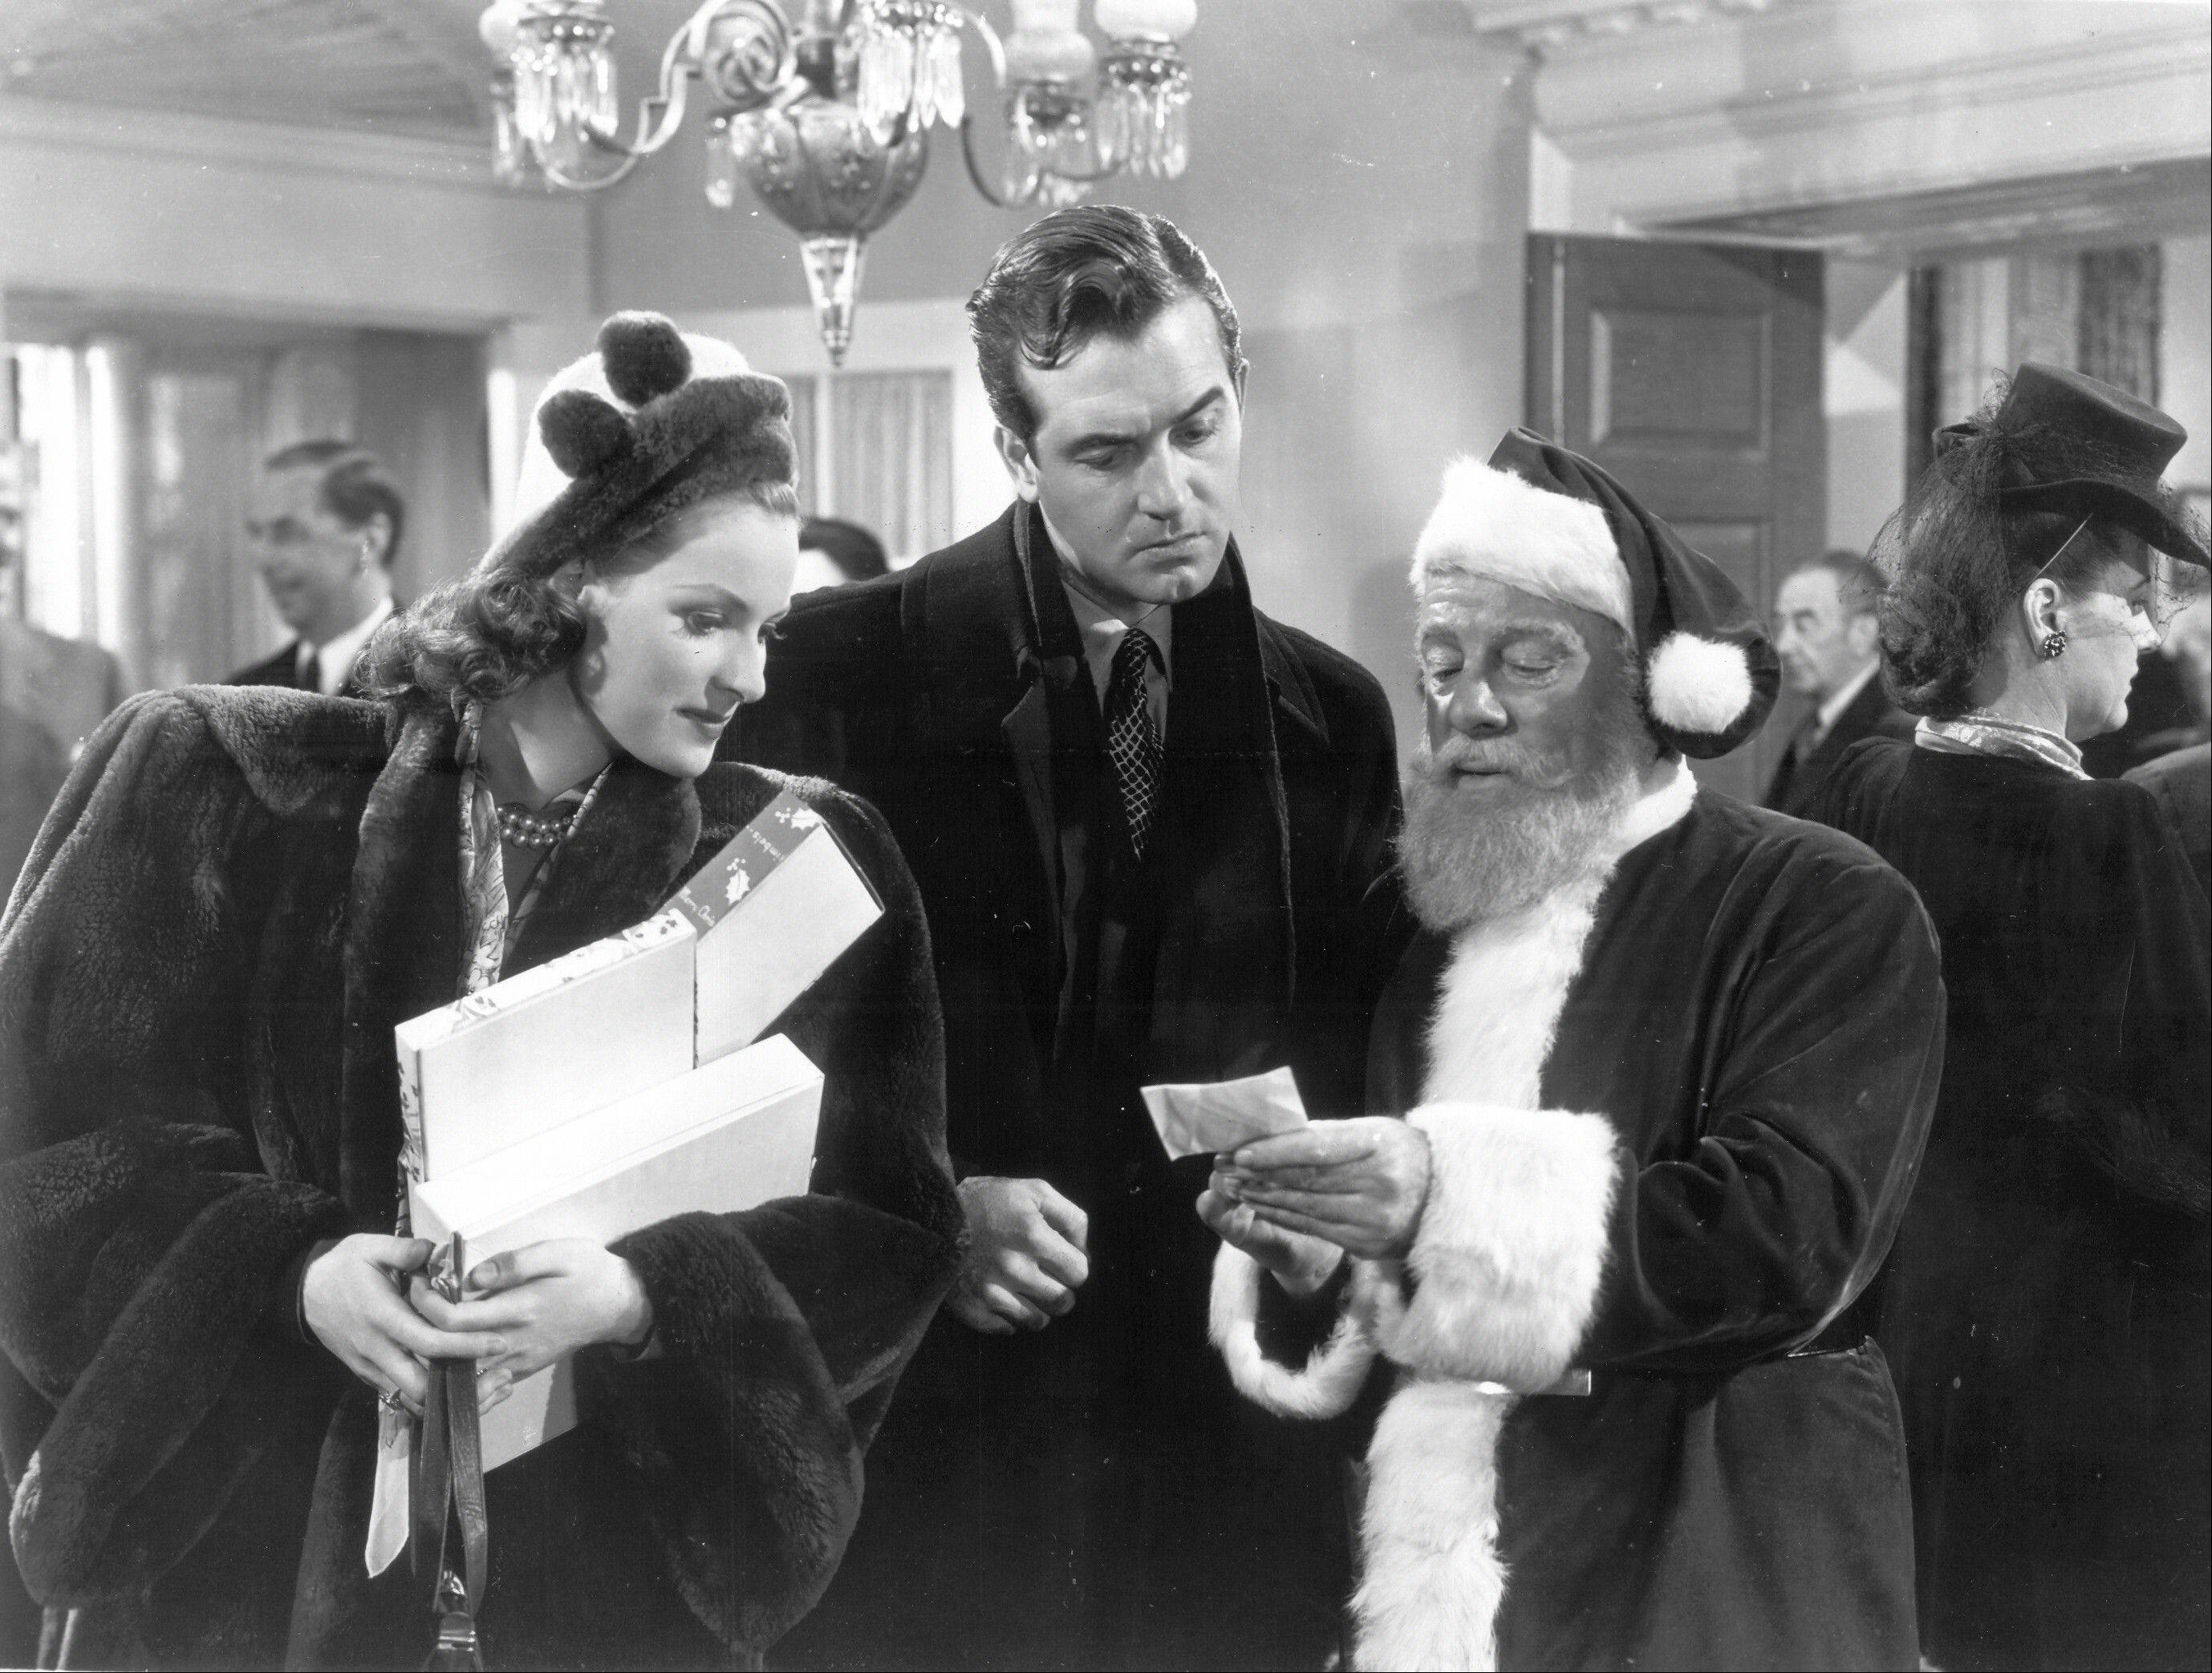 """Miracle on 34th Street"" (1947) starring Maureen O'Hara (as Doris Walker), John Payne (as Fred Gailey) and Edmund Gwenn (as Kris Kringle)."